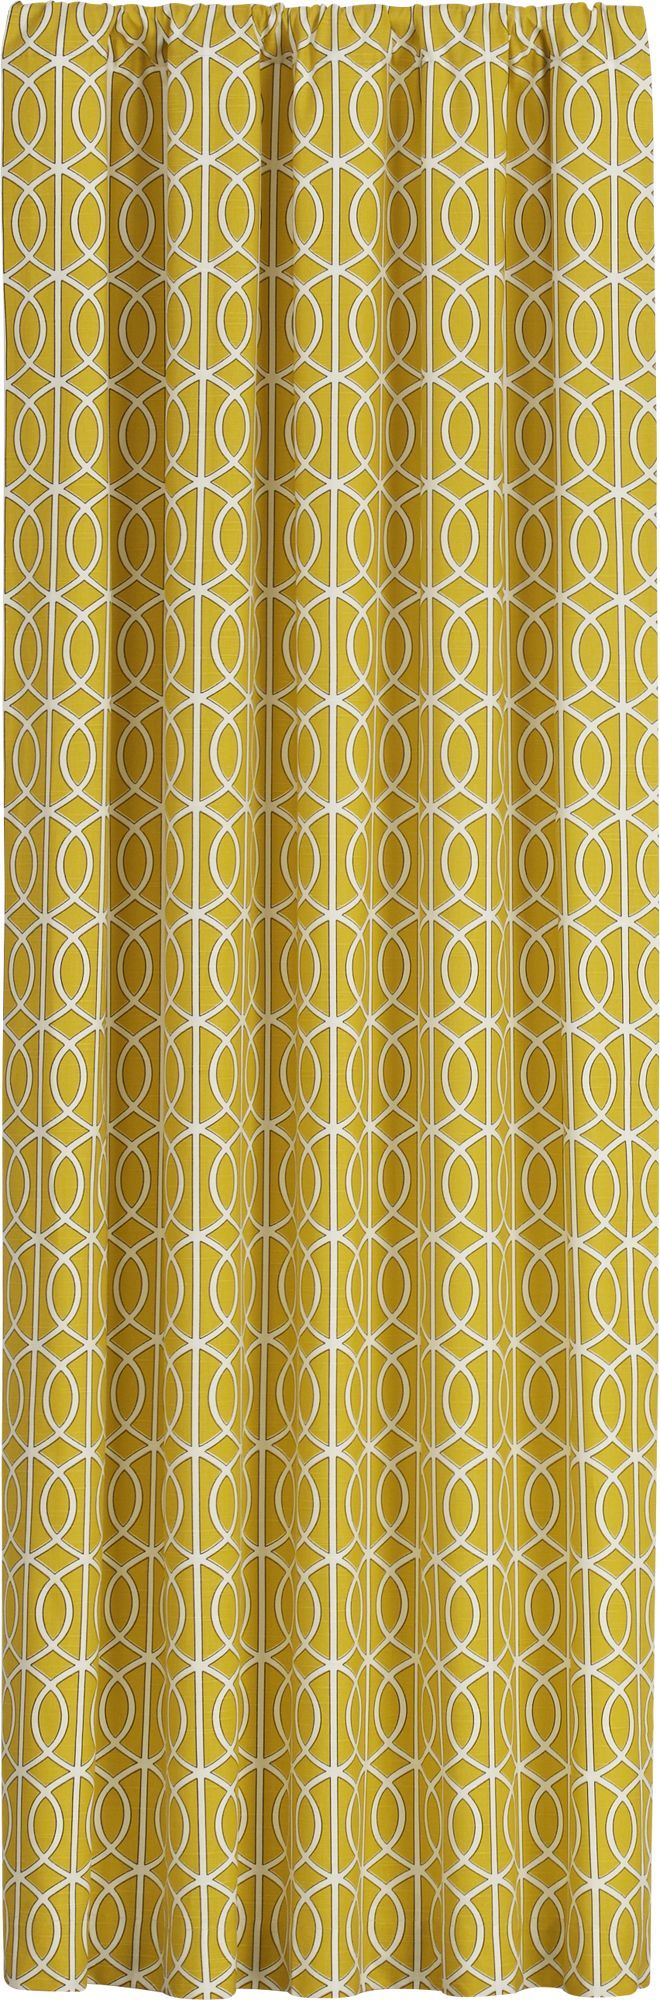 Bella Porte Citrine 50x108 Curtain Panel in Curtains | Crate and Barrel